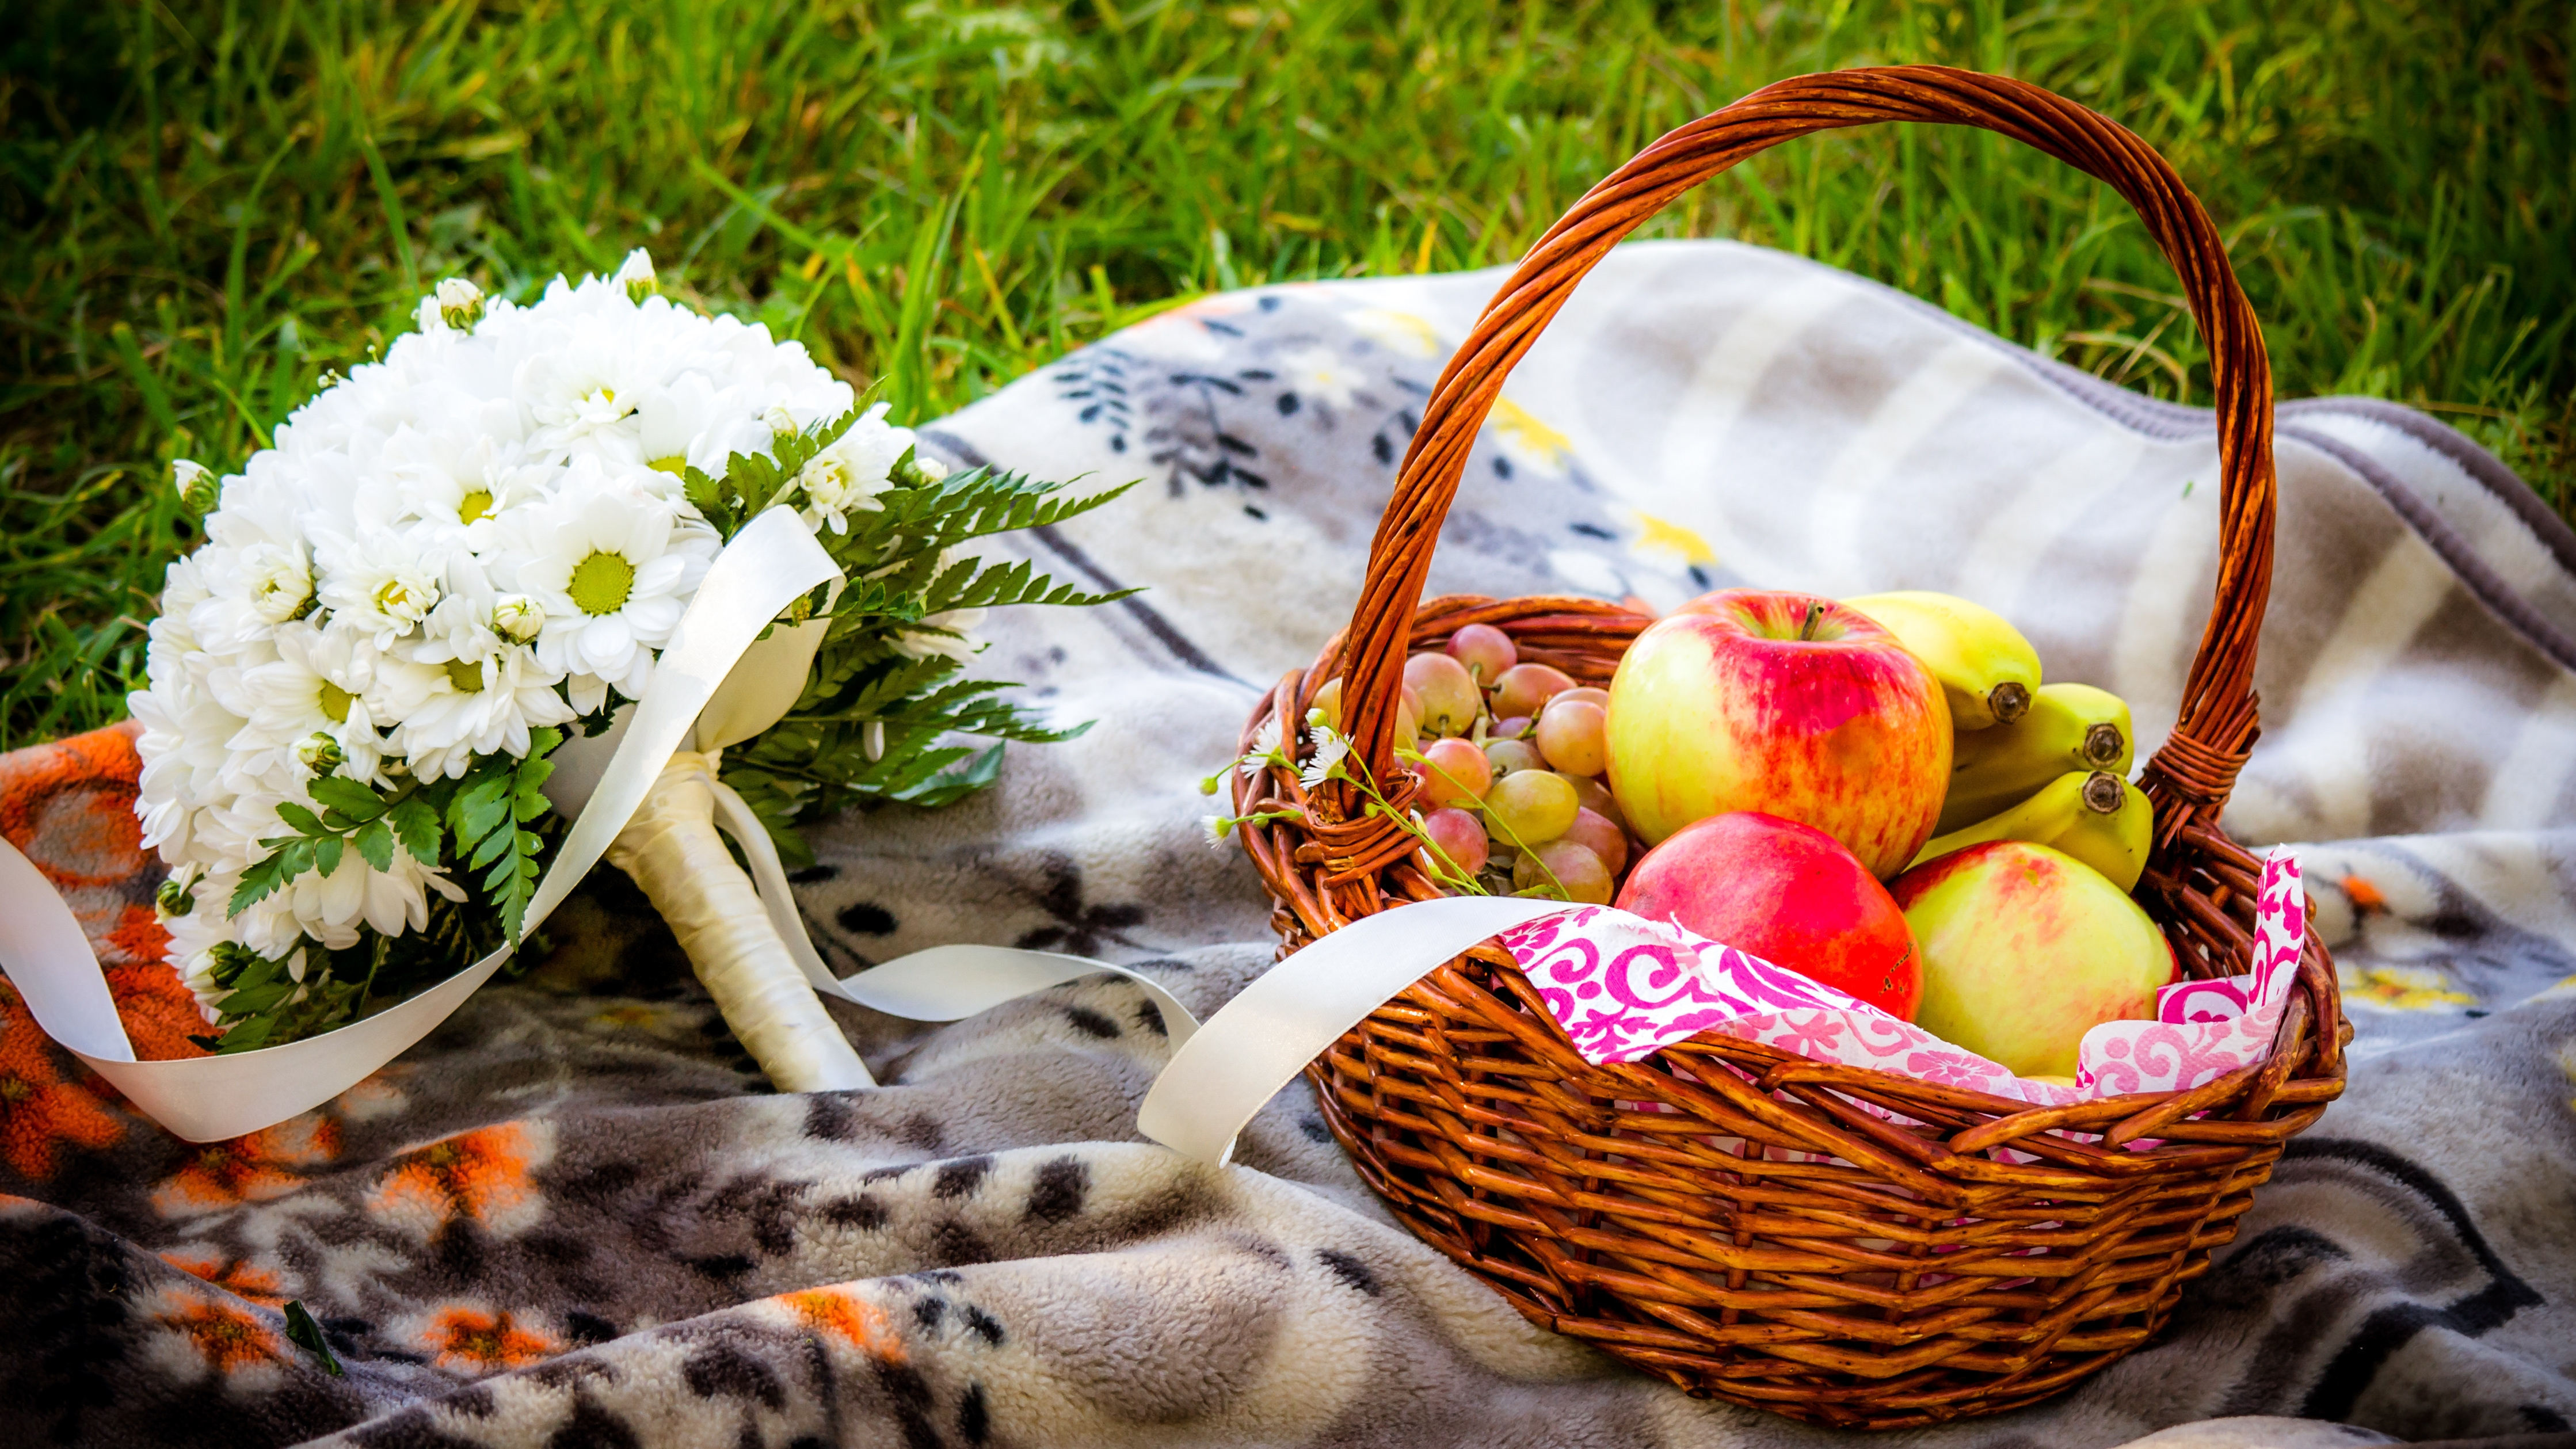 100345 download wallpaper Food, Flowers, Apples, Bouquet, Basket screensavers and pictures for free